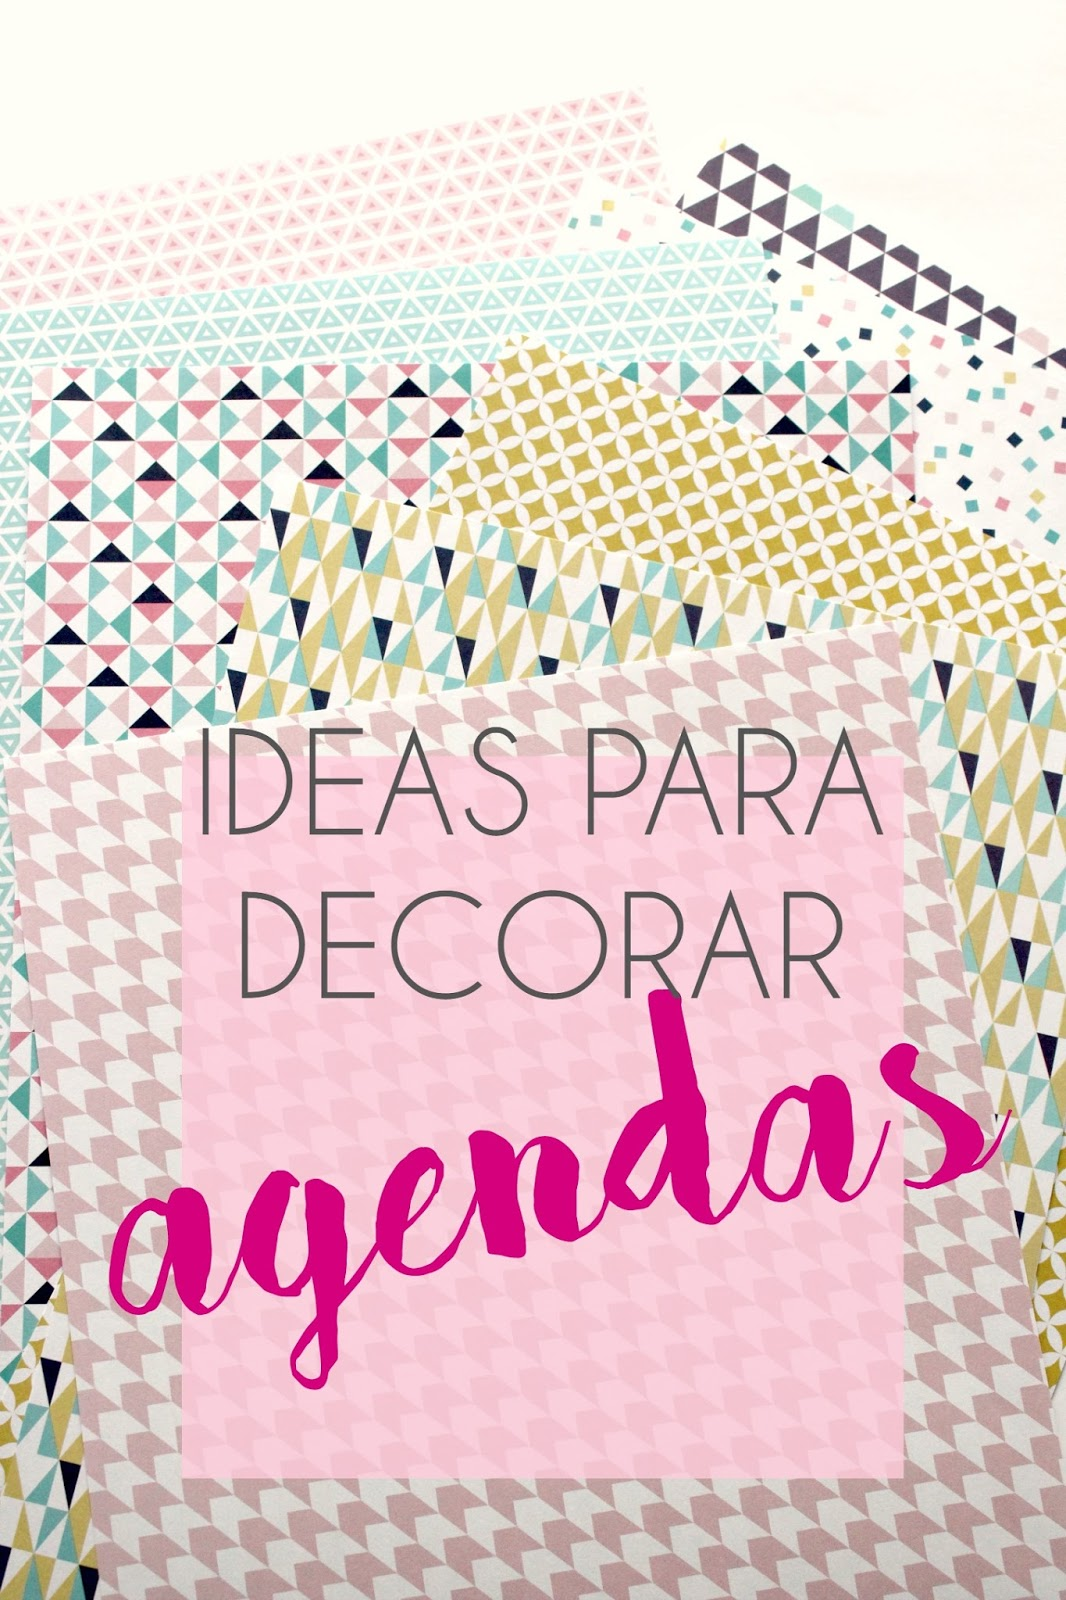 Ideas para decorar agendas hamoraima - Ideas para decorar vestibulos ...